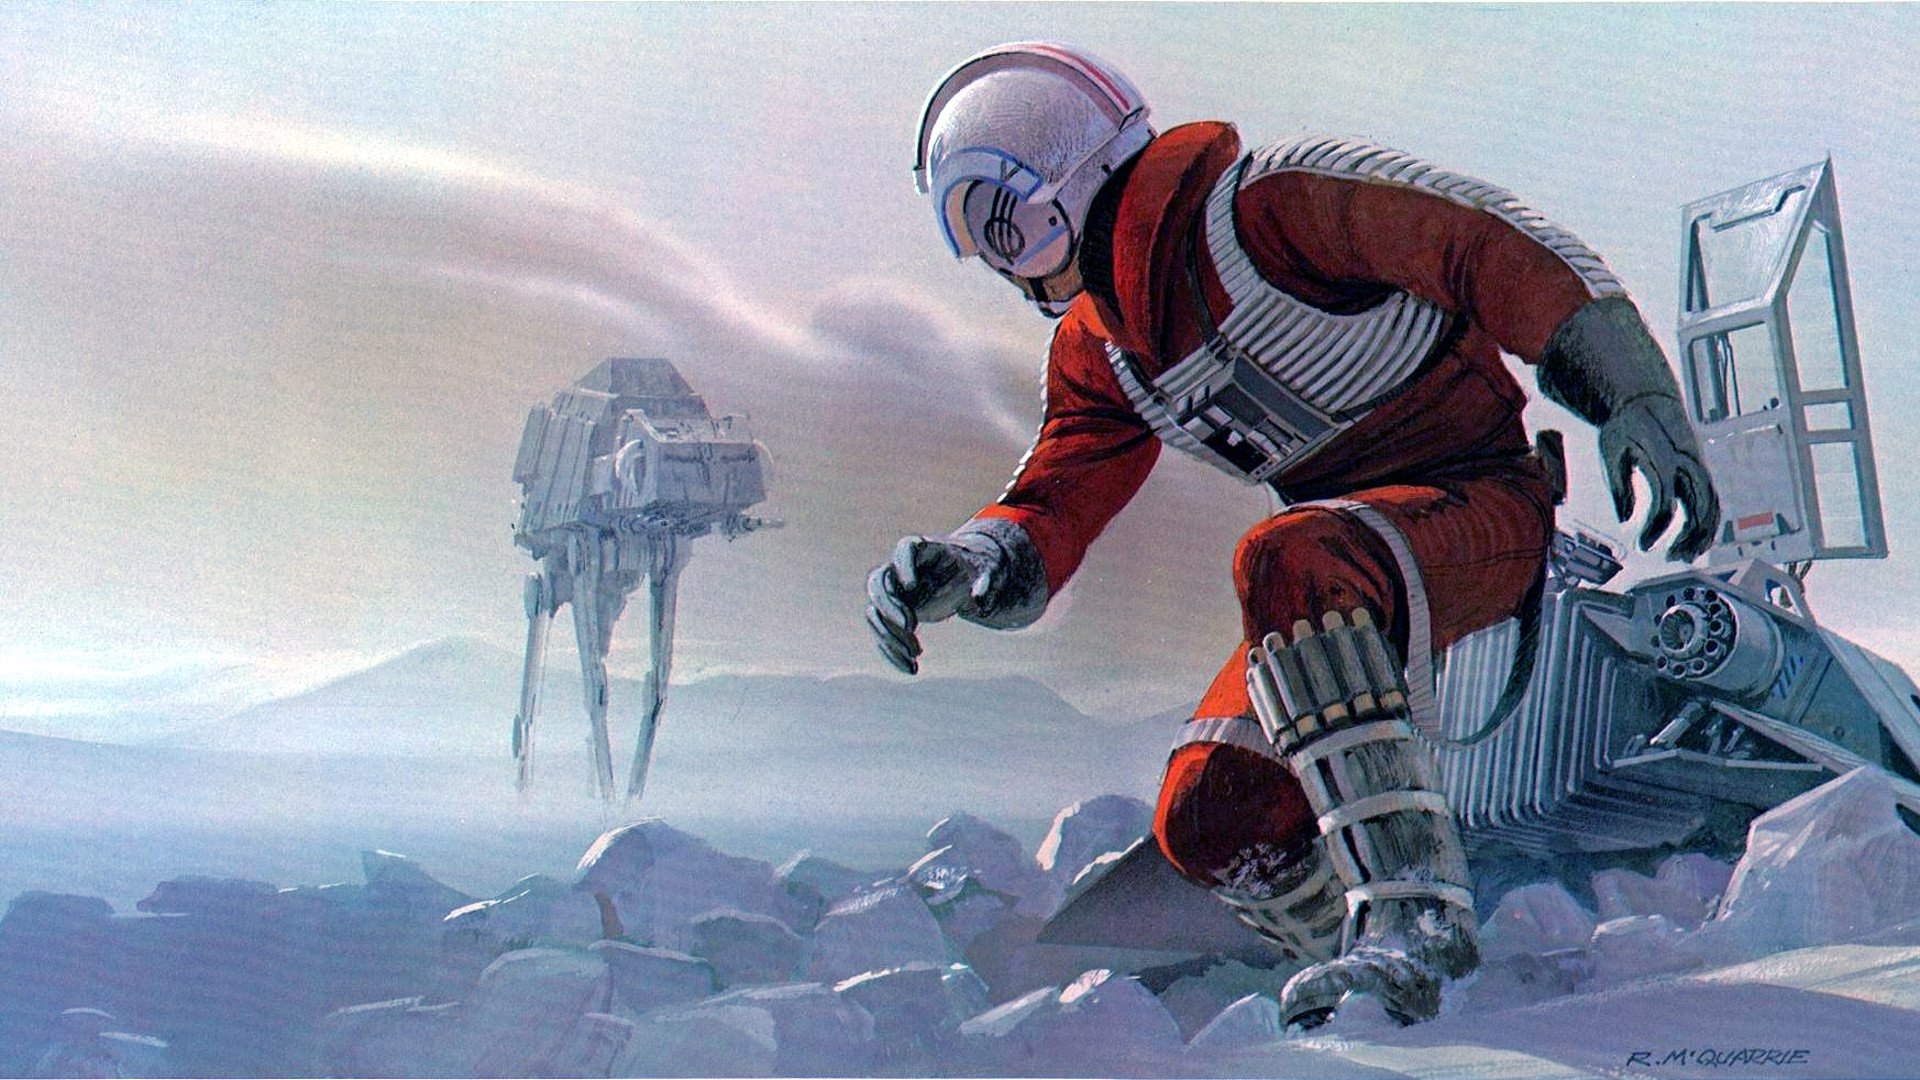 Star Wars Episode V The Empire Strikes Back Wallpapers Pictures Images